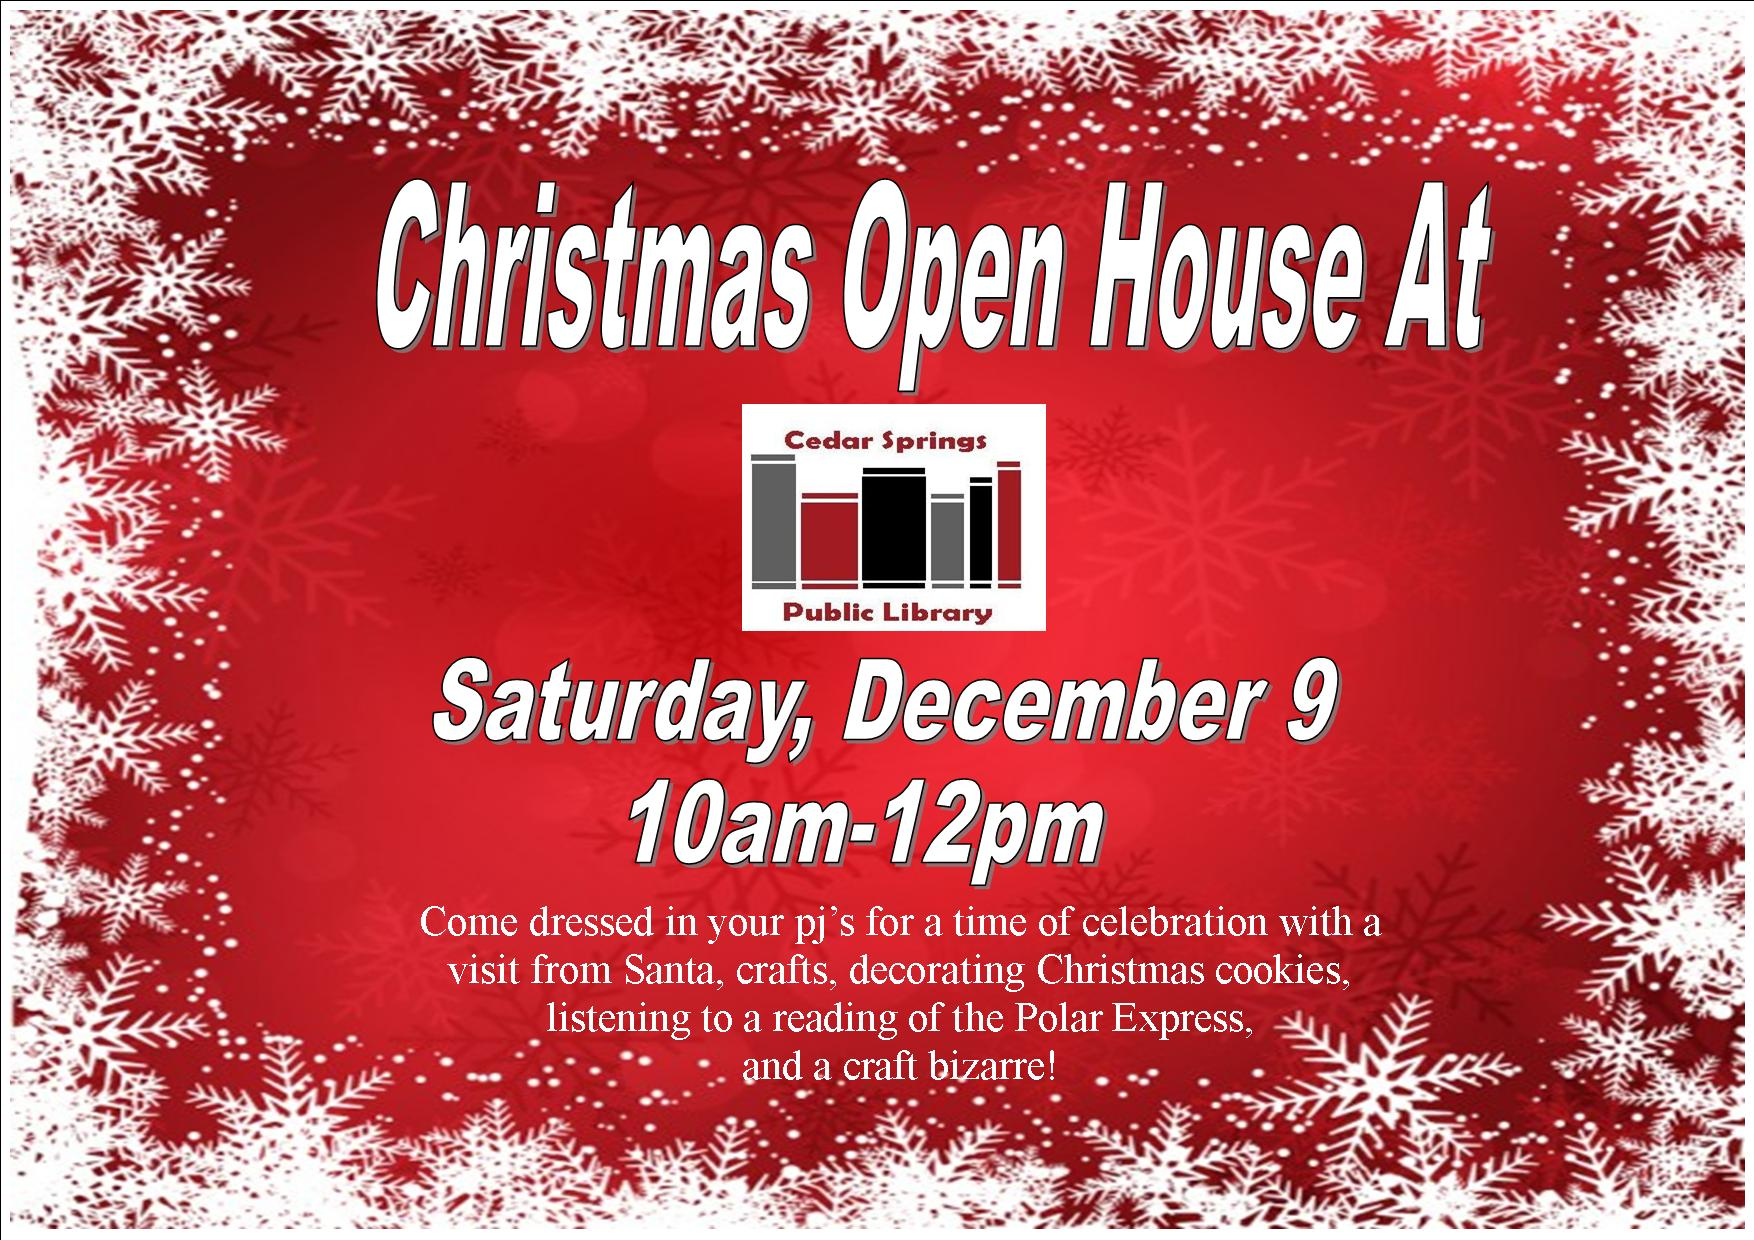 Christmas Open House- Visit Santa/Craft Bazaar!